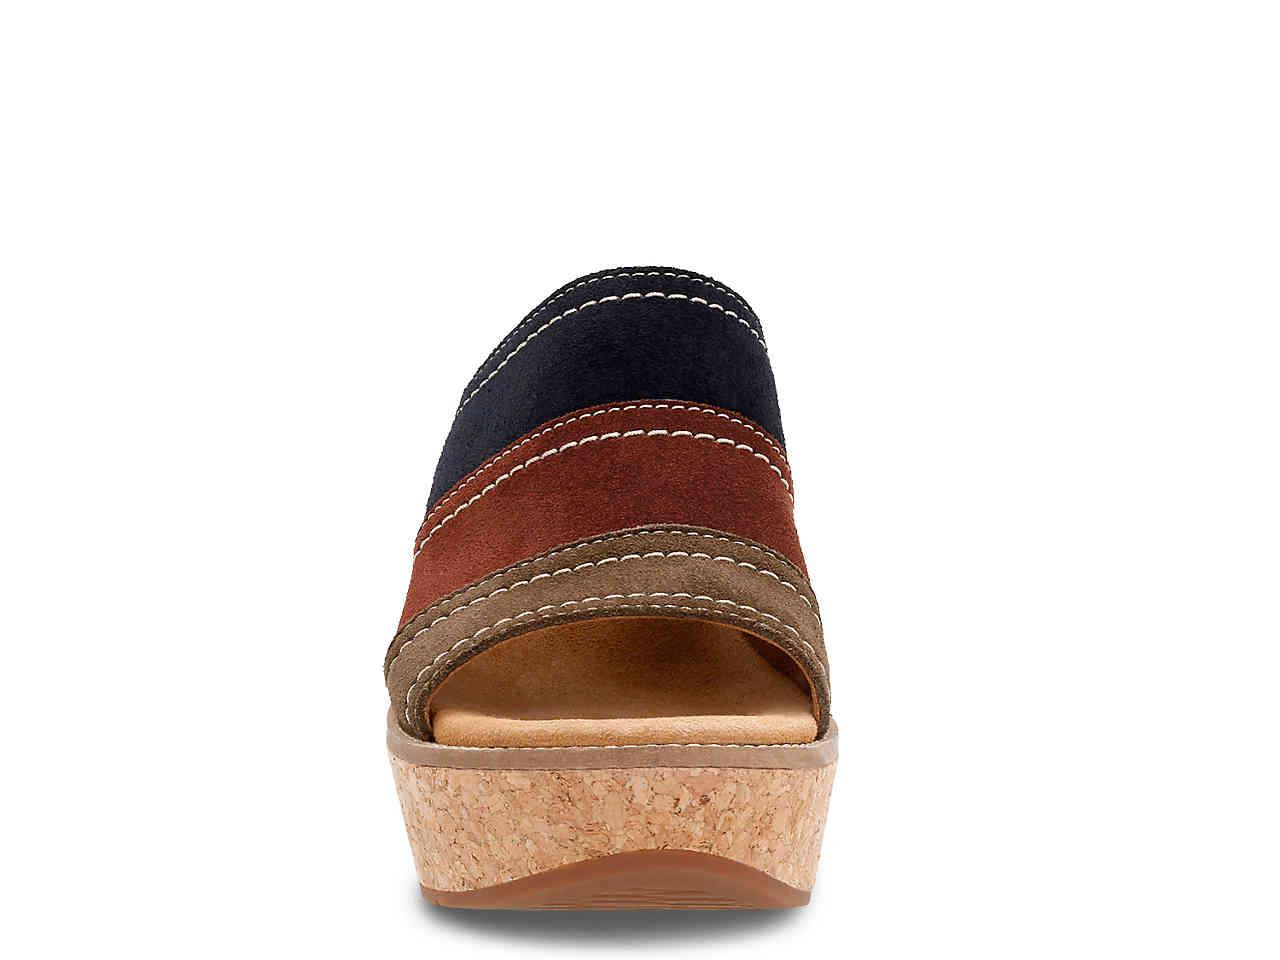 58437b5474 Lyst - Clarks Aisley Lily Wedge Sandal in Brown